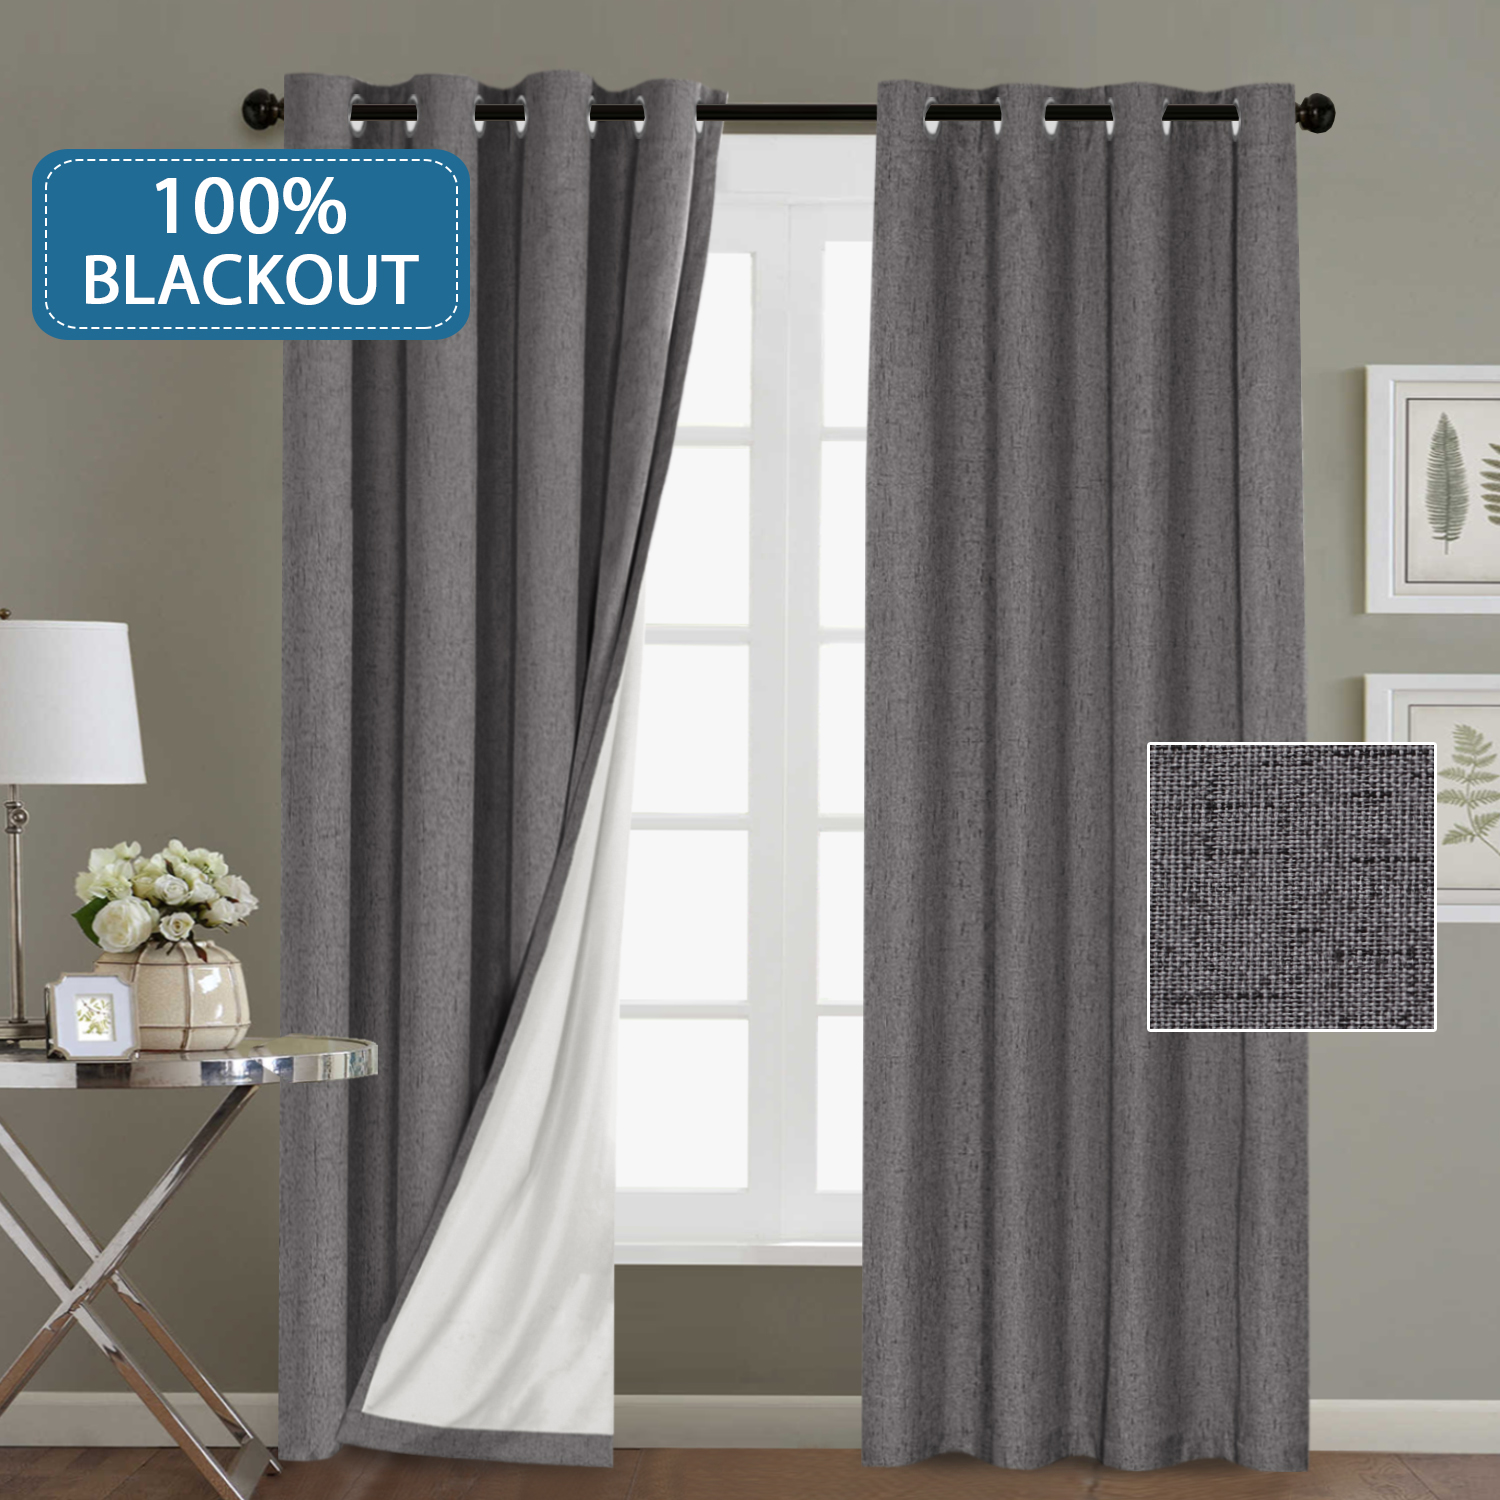 window treatment grommet linen like primitive 100 blackout curtains waterproof thermal insulated grey curtains with white backing 2 panels set 52